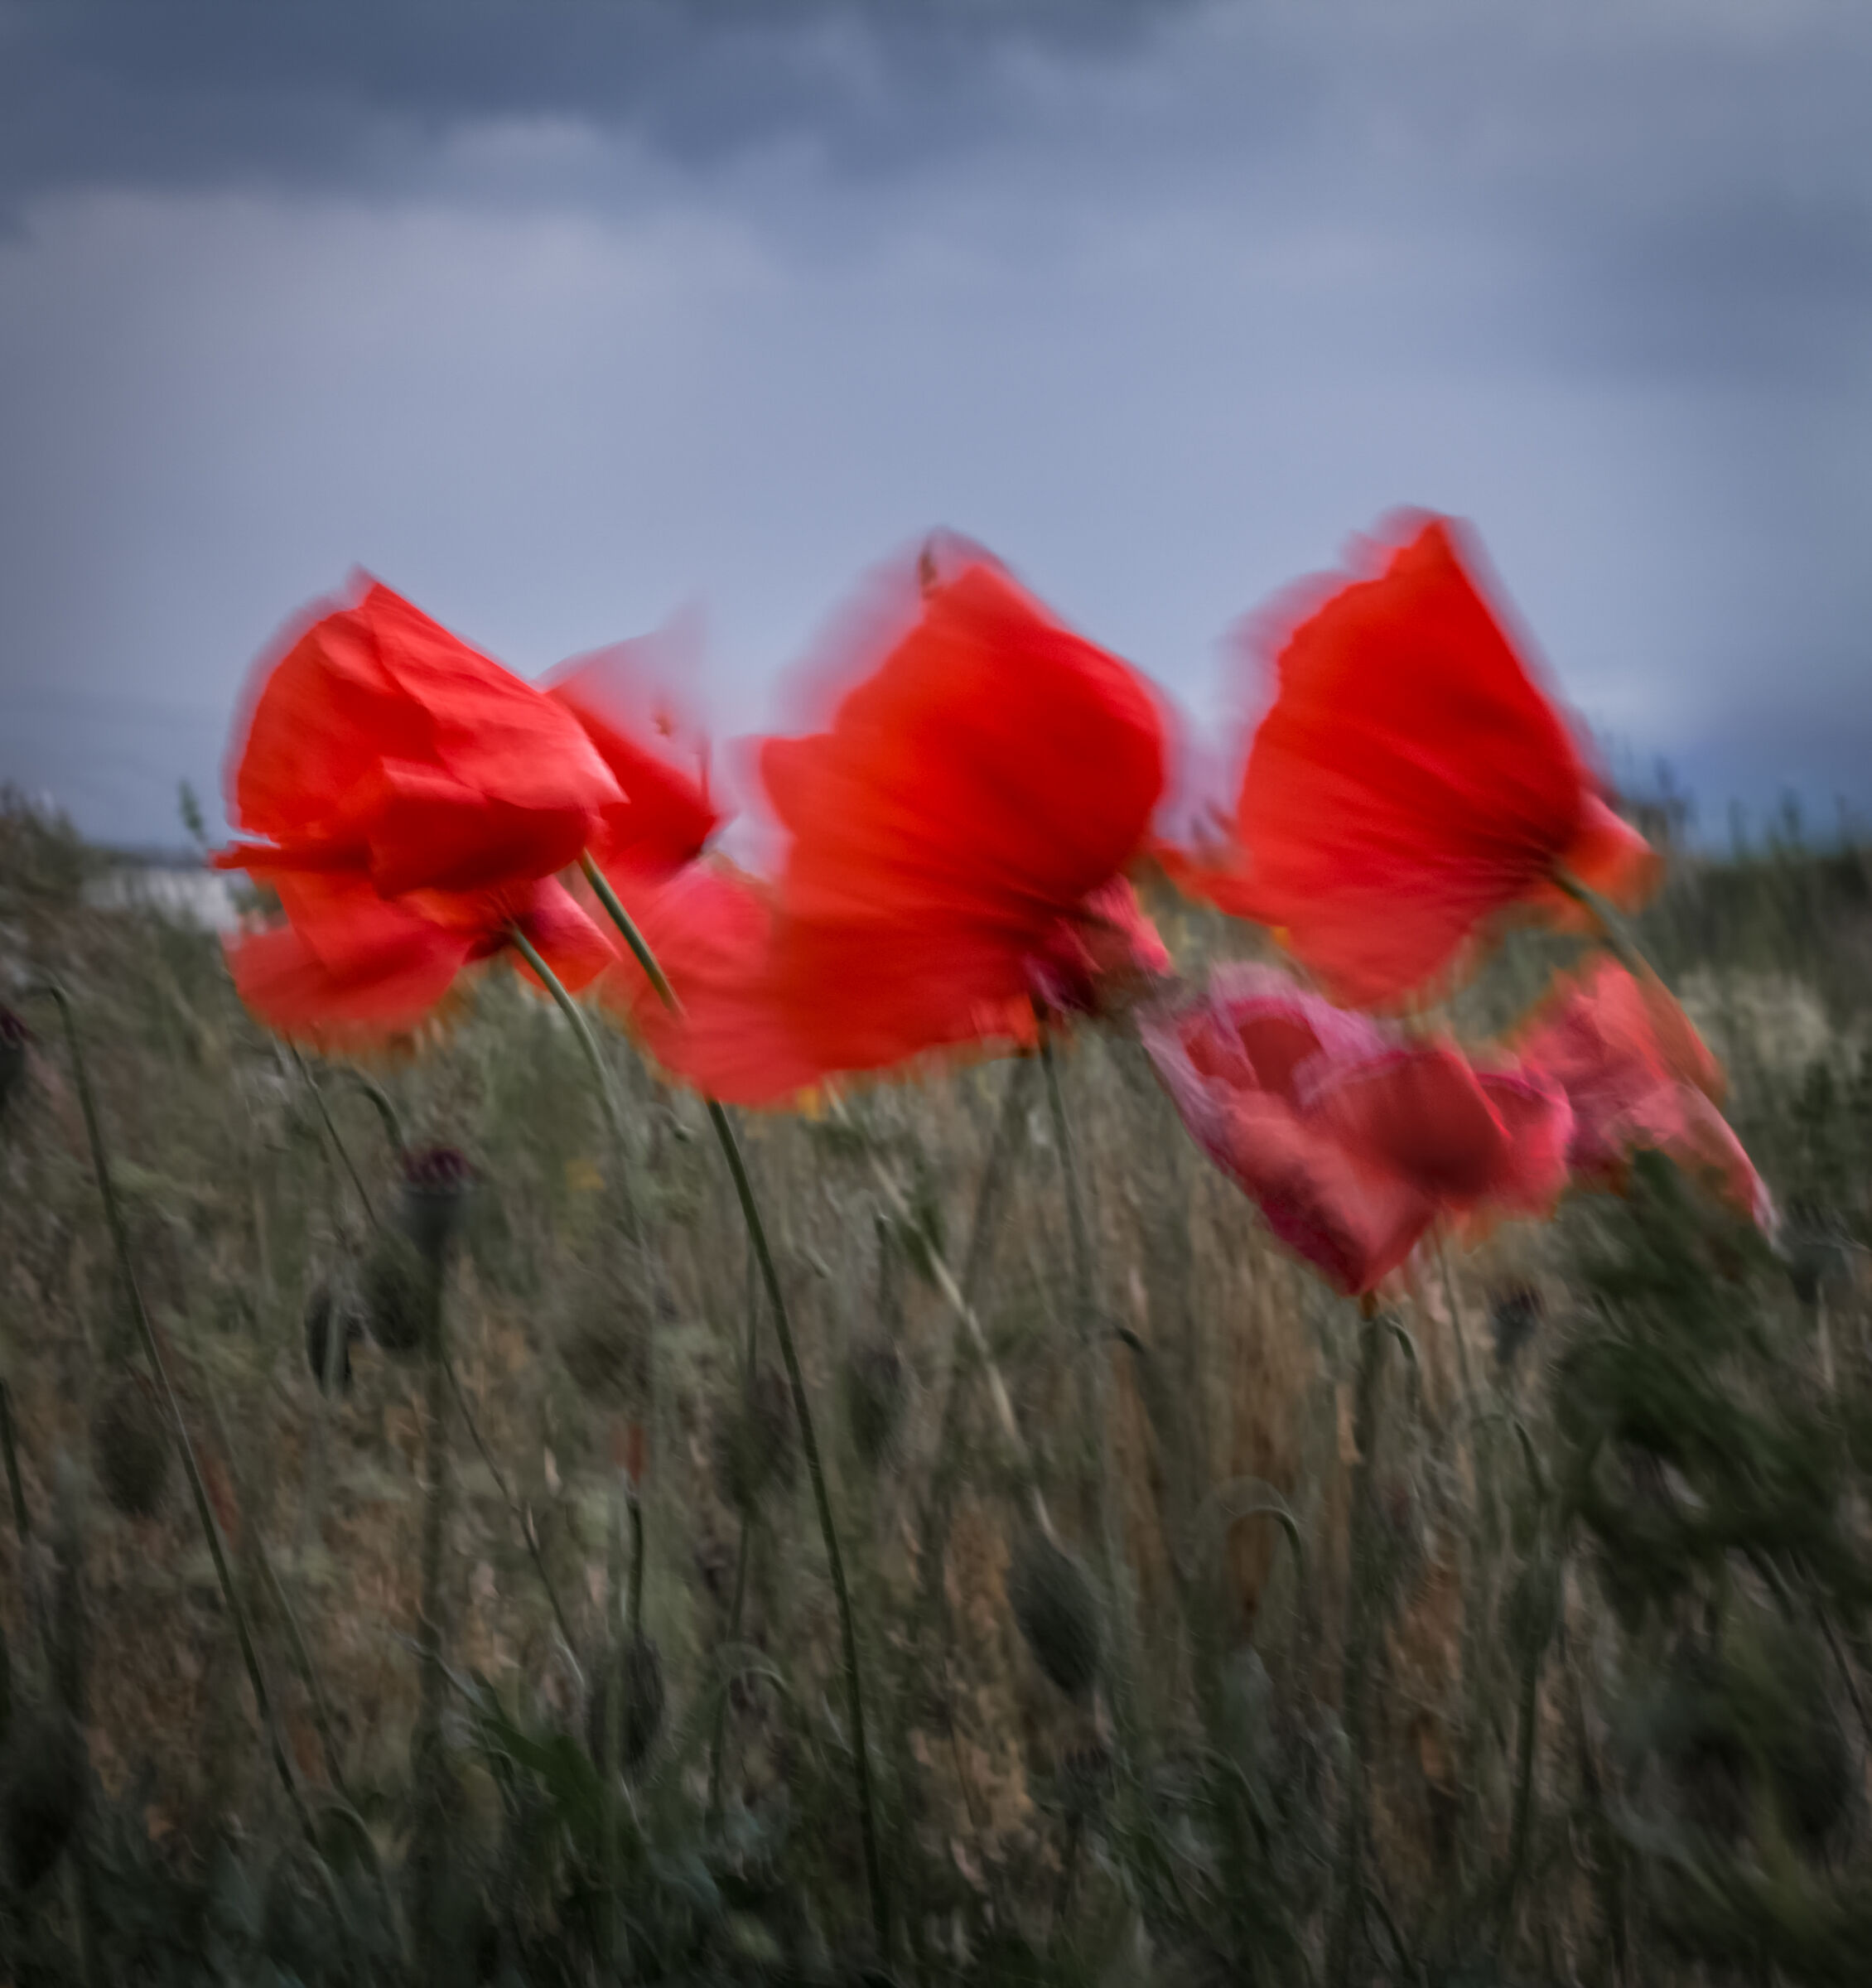 The dance of poppies...